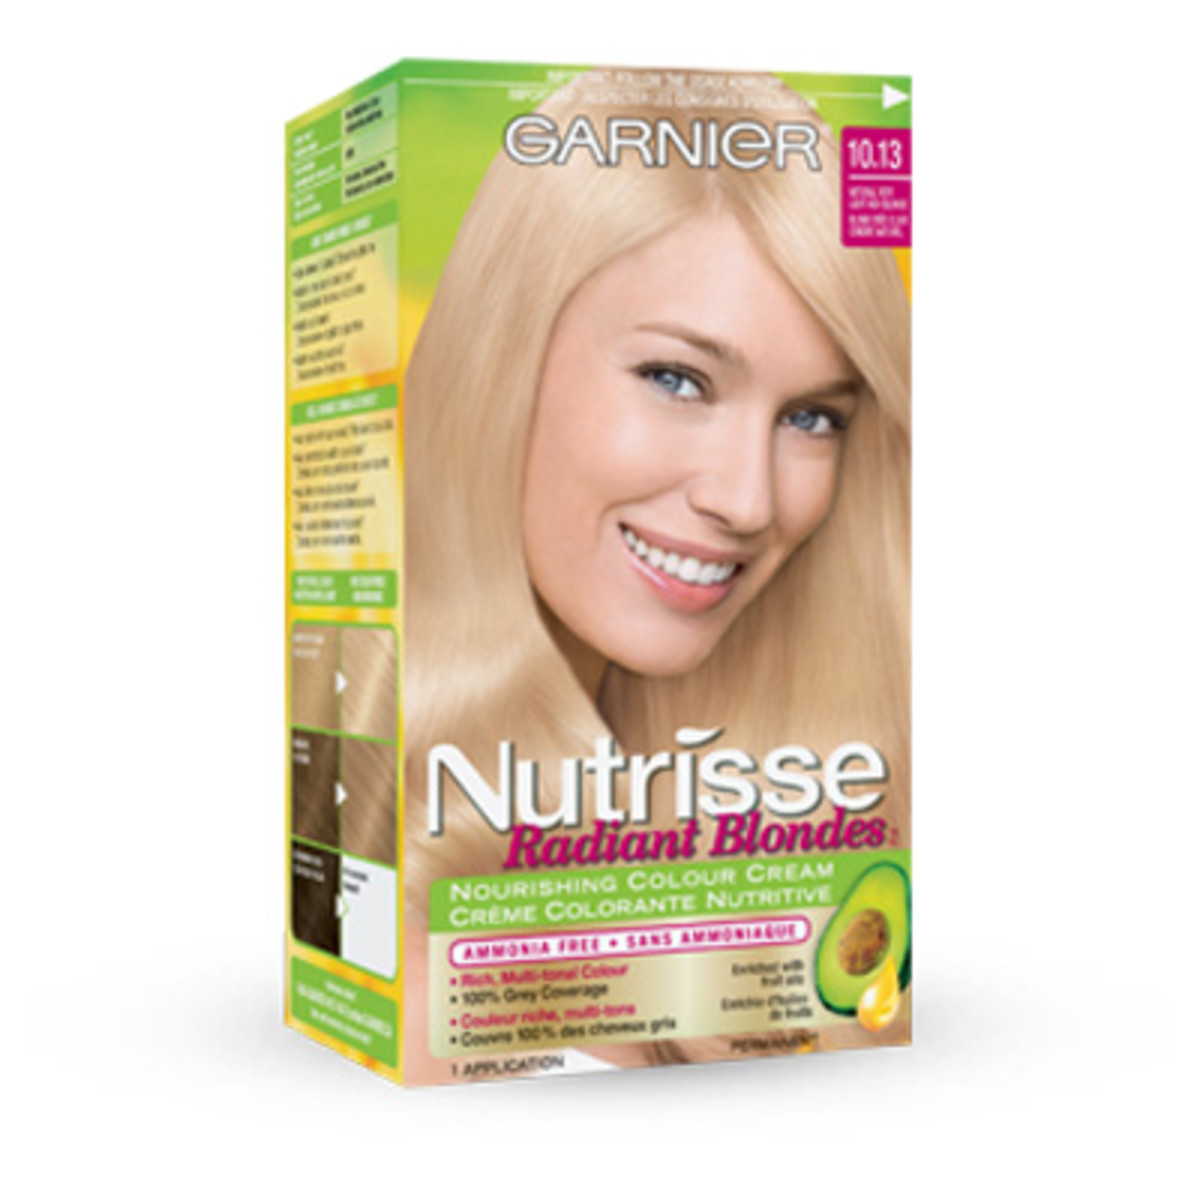 How i dyed my brown hair blonde at home beautyeditor garnier nutrisse radiant blondes 1013 natural very light ash blonde solutioingenieria Images